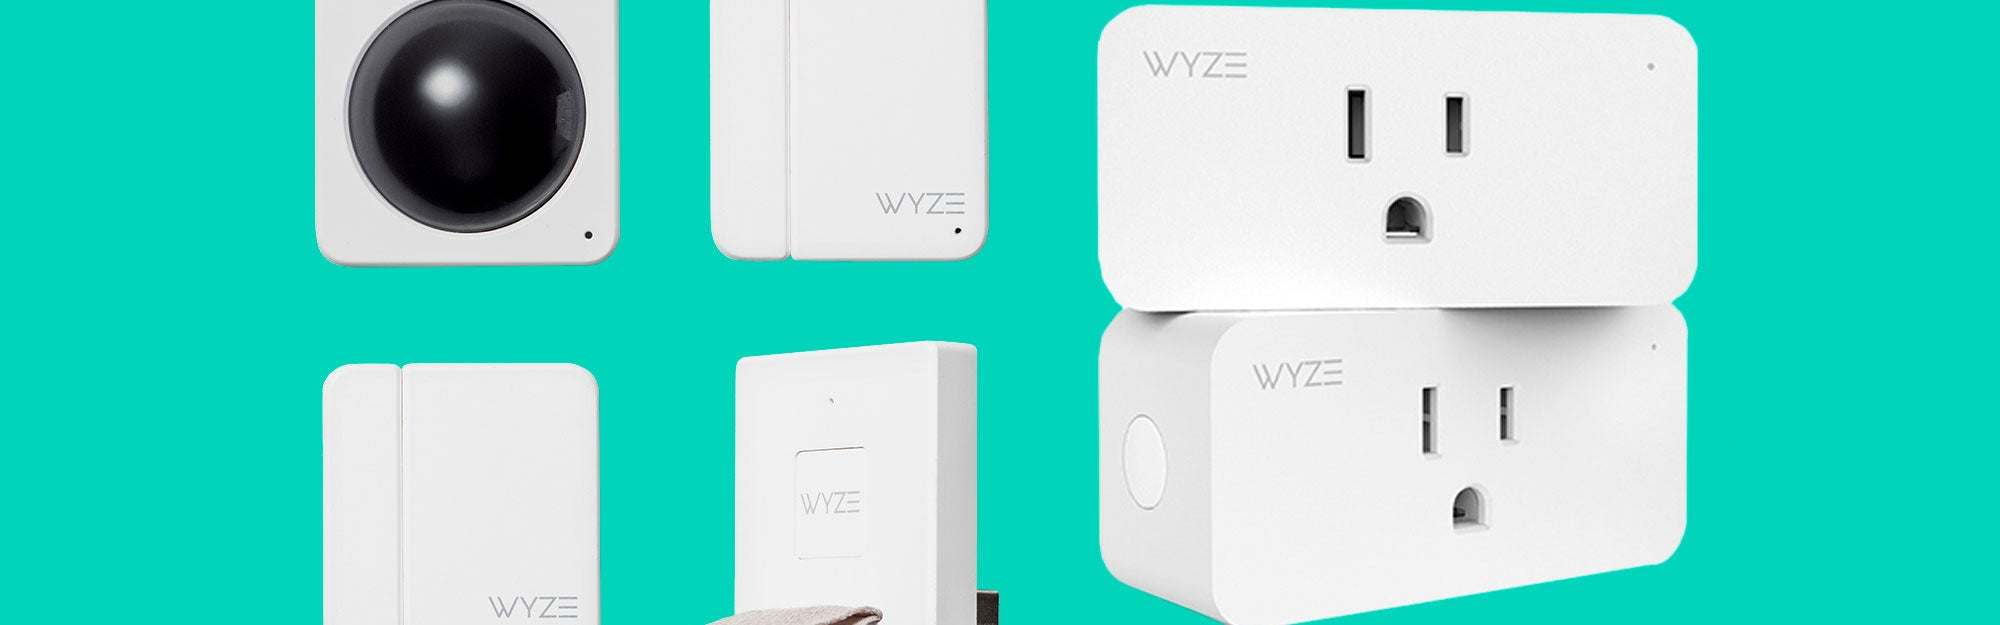 New Wyze Plug Represents an Easy, Affordable Way to Start a Smart Home image